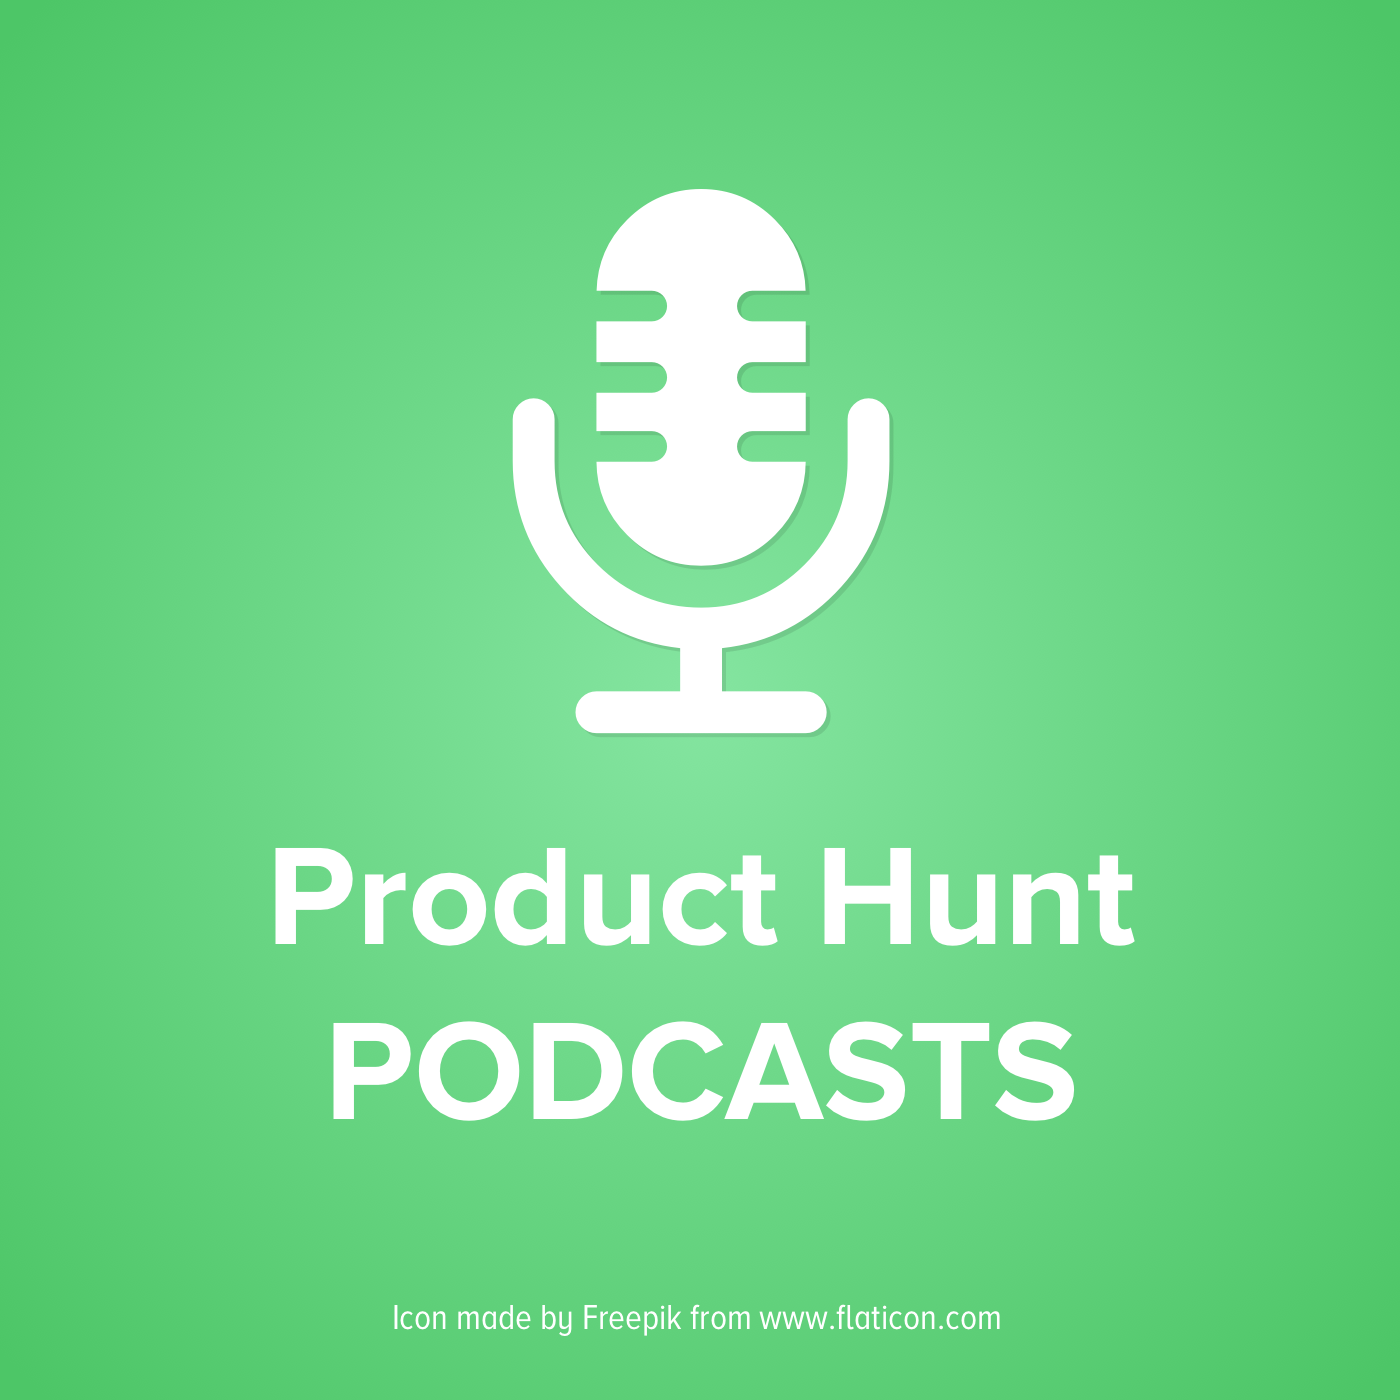 <![CDATA[Product Hunt podcasts]]>